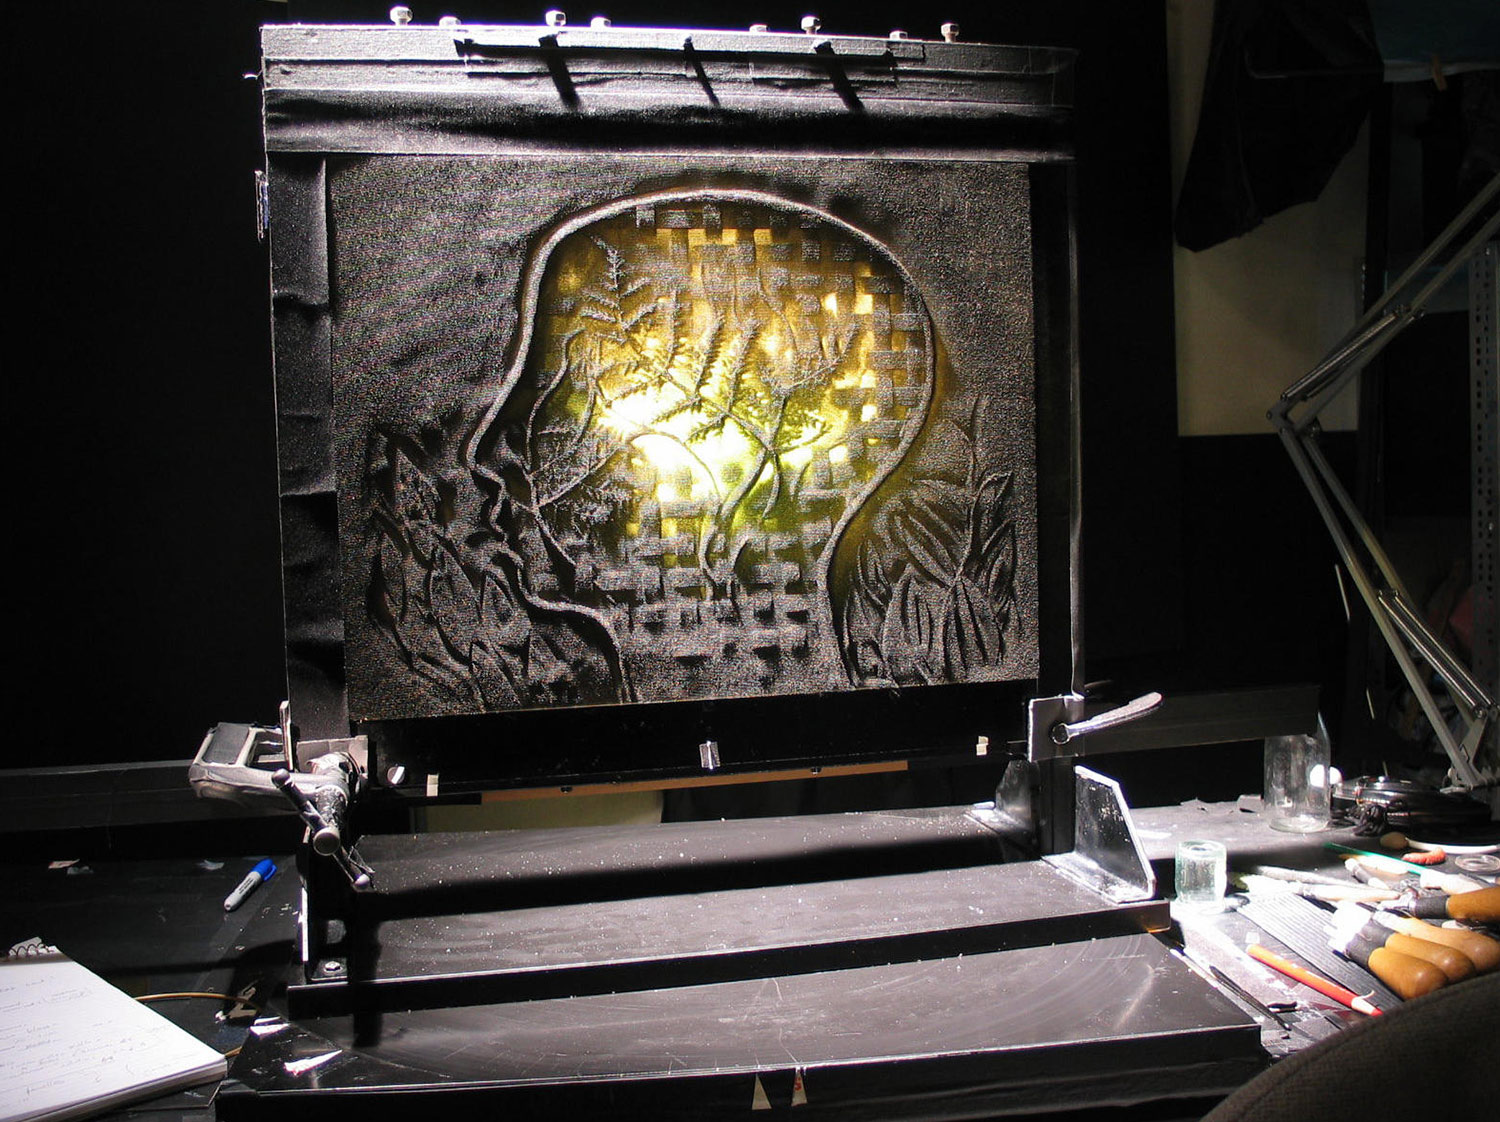 """The pinscreen during the production of """"Imprints."""" © 2004 National Film Board of Canada. All rights reserved."""